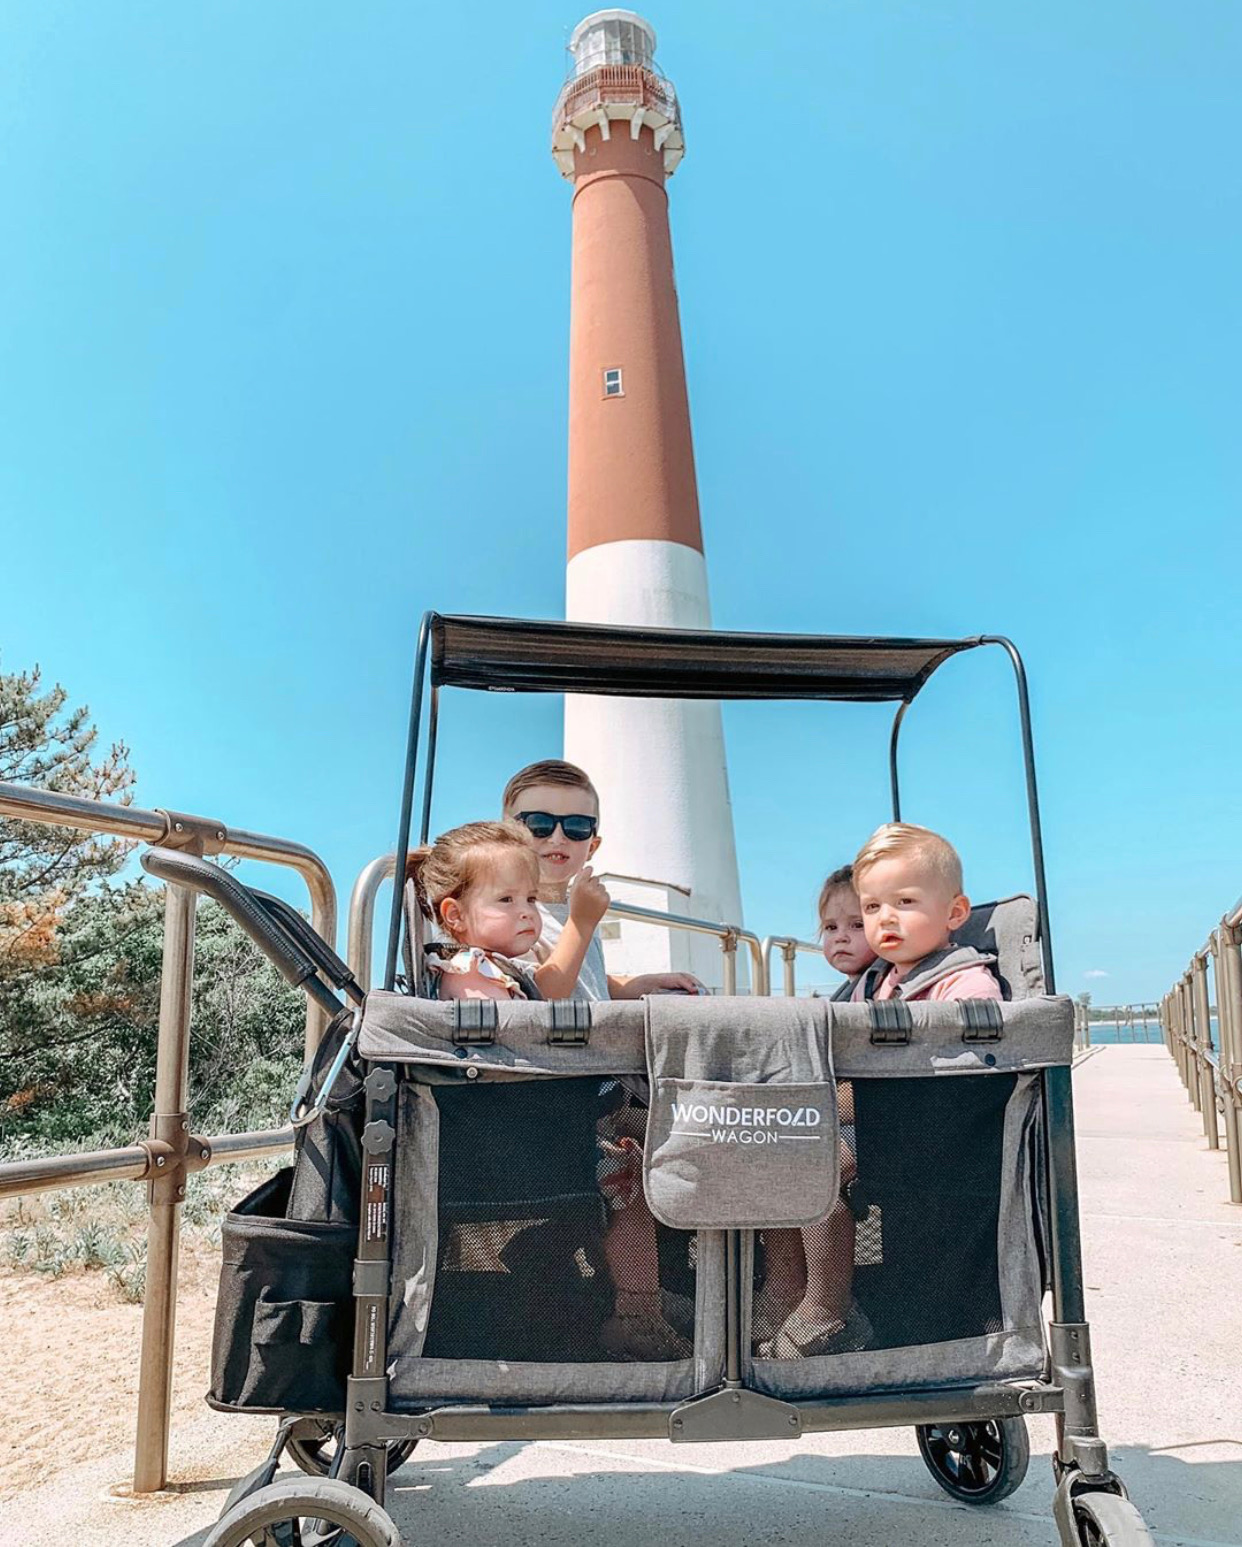 NJ Attractions, barnegat lighthouse state park indoor water park aquarium Camden zoo cape may things to do nj visiting places tourist attractions New Jersey kid attractions in nj